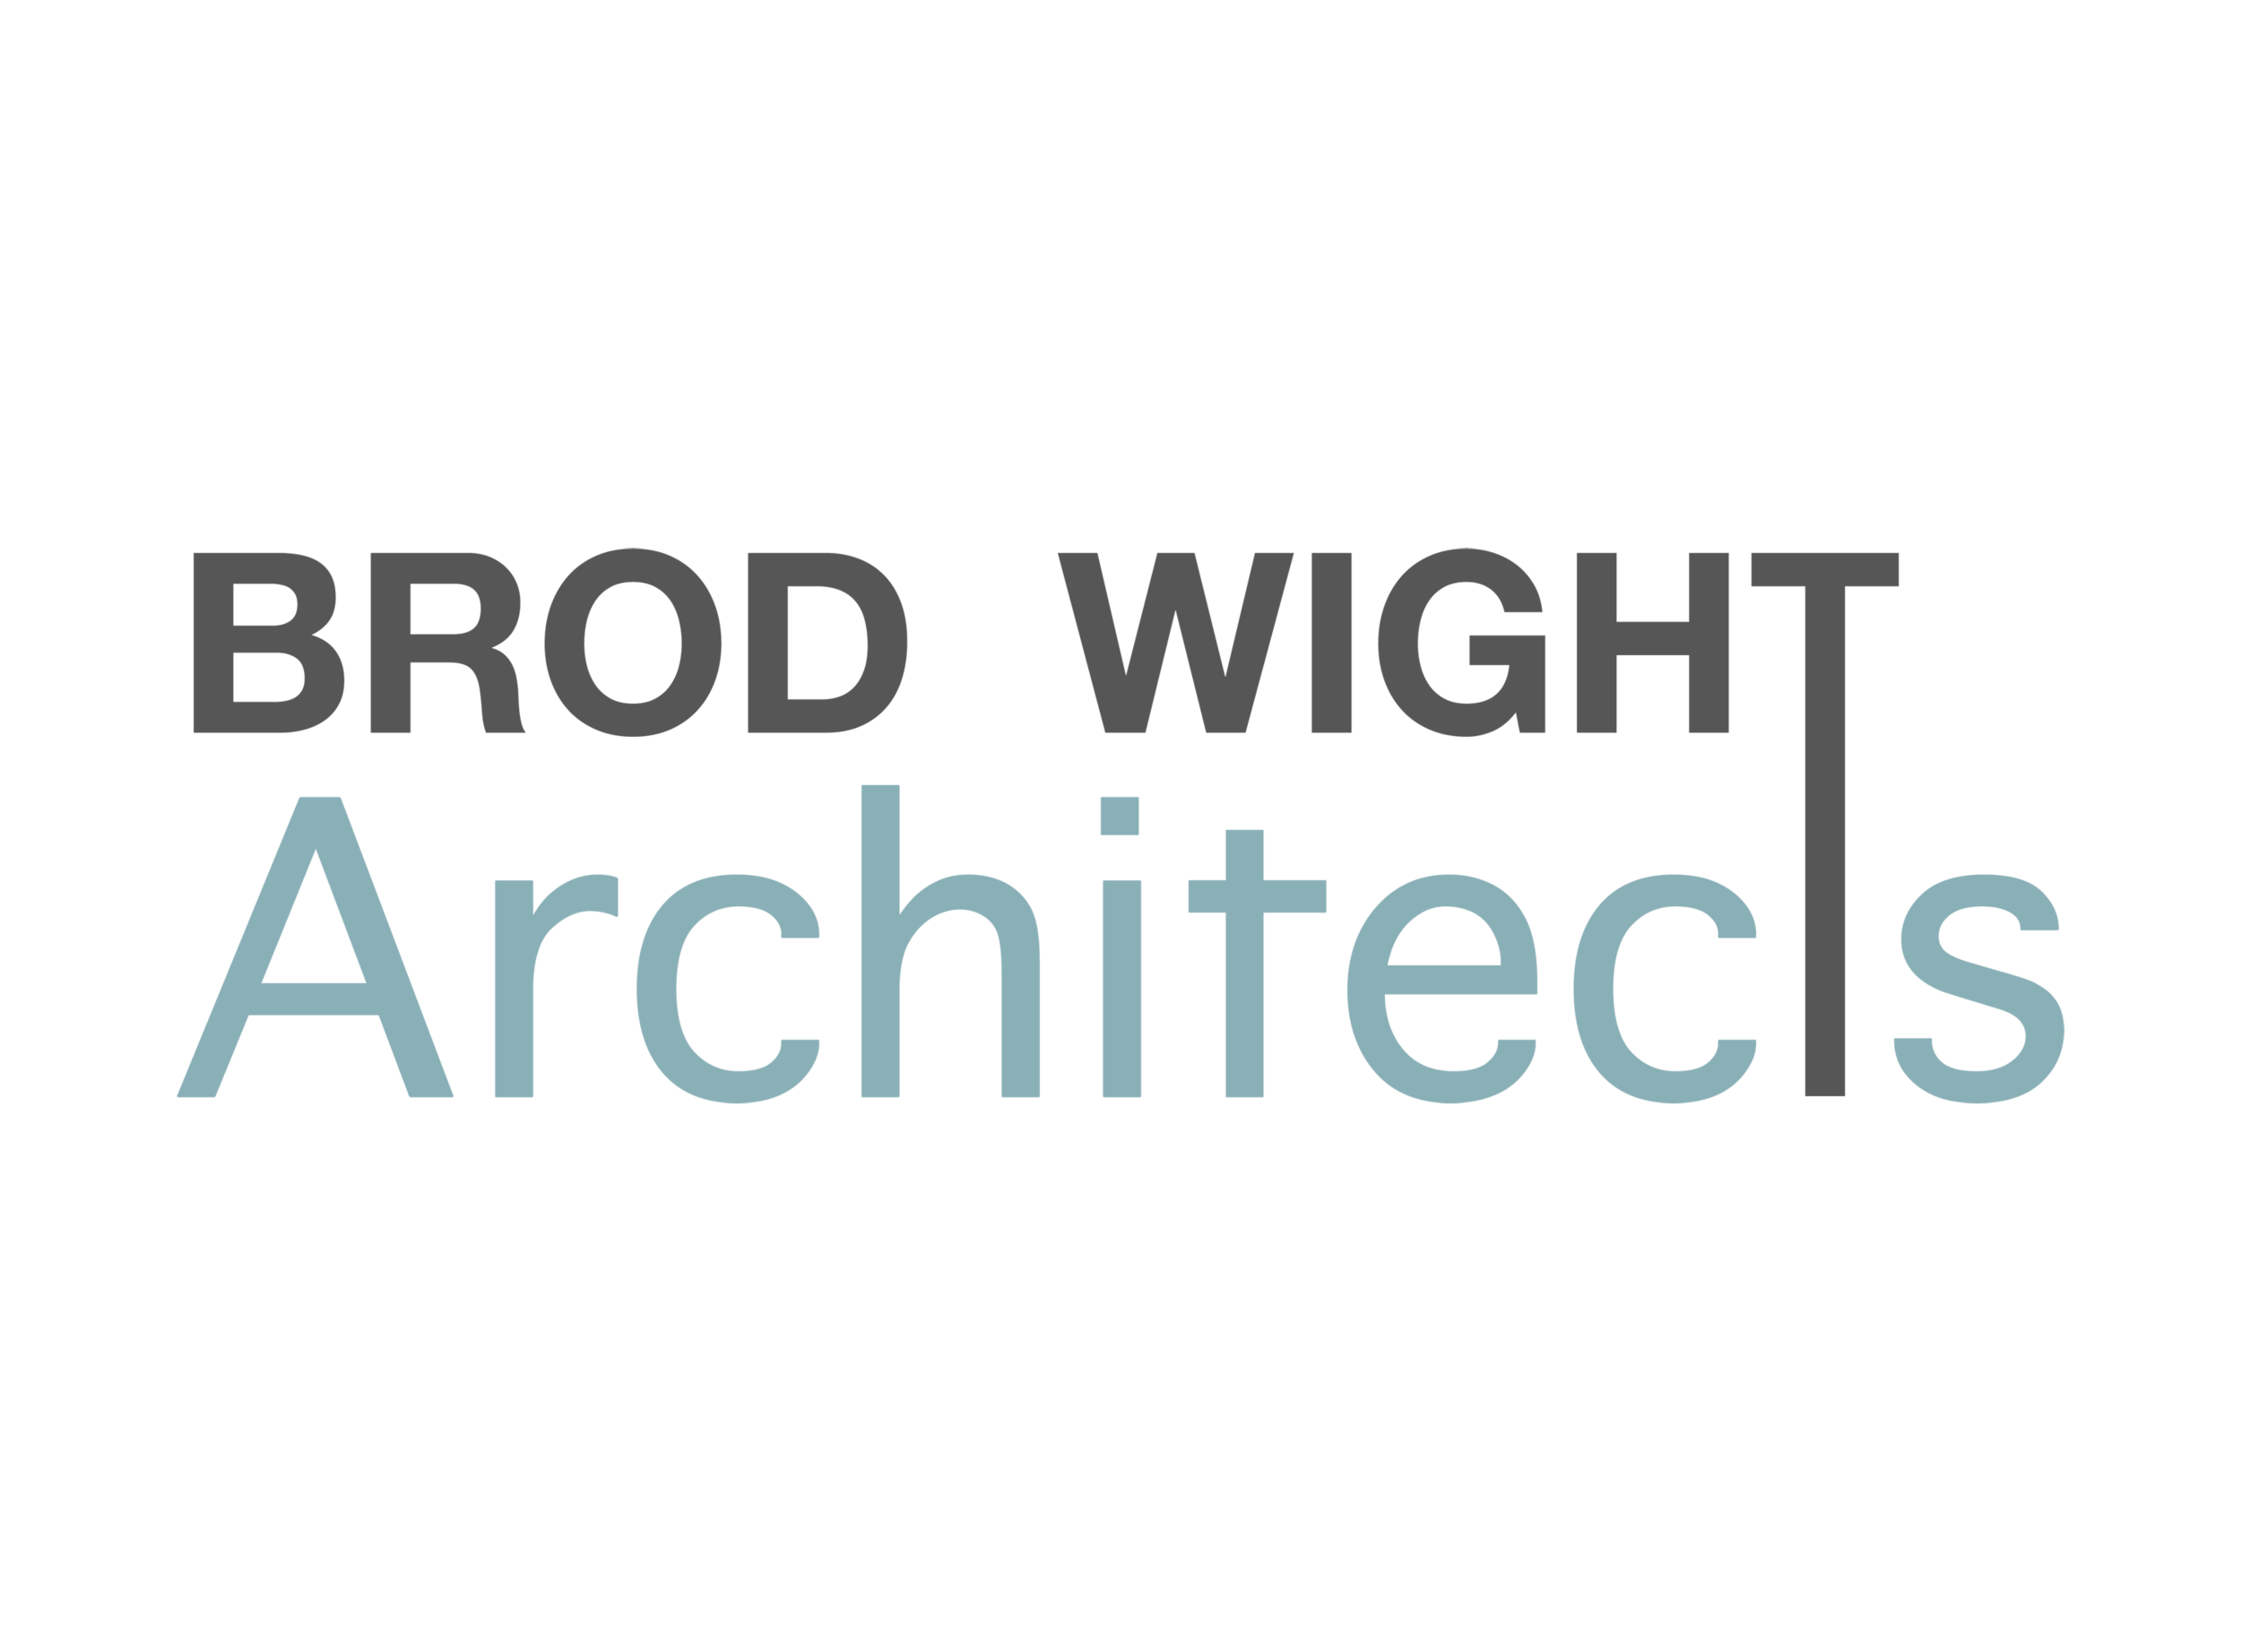 Brod Wight Architects